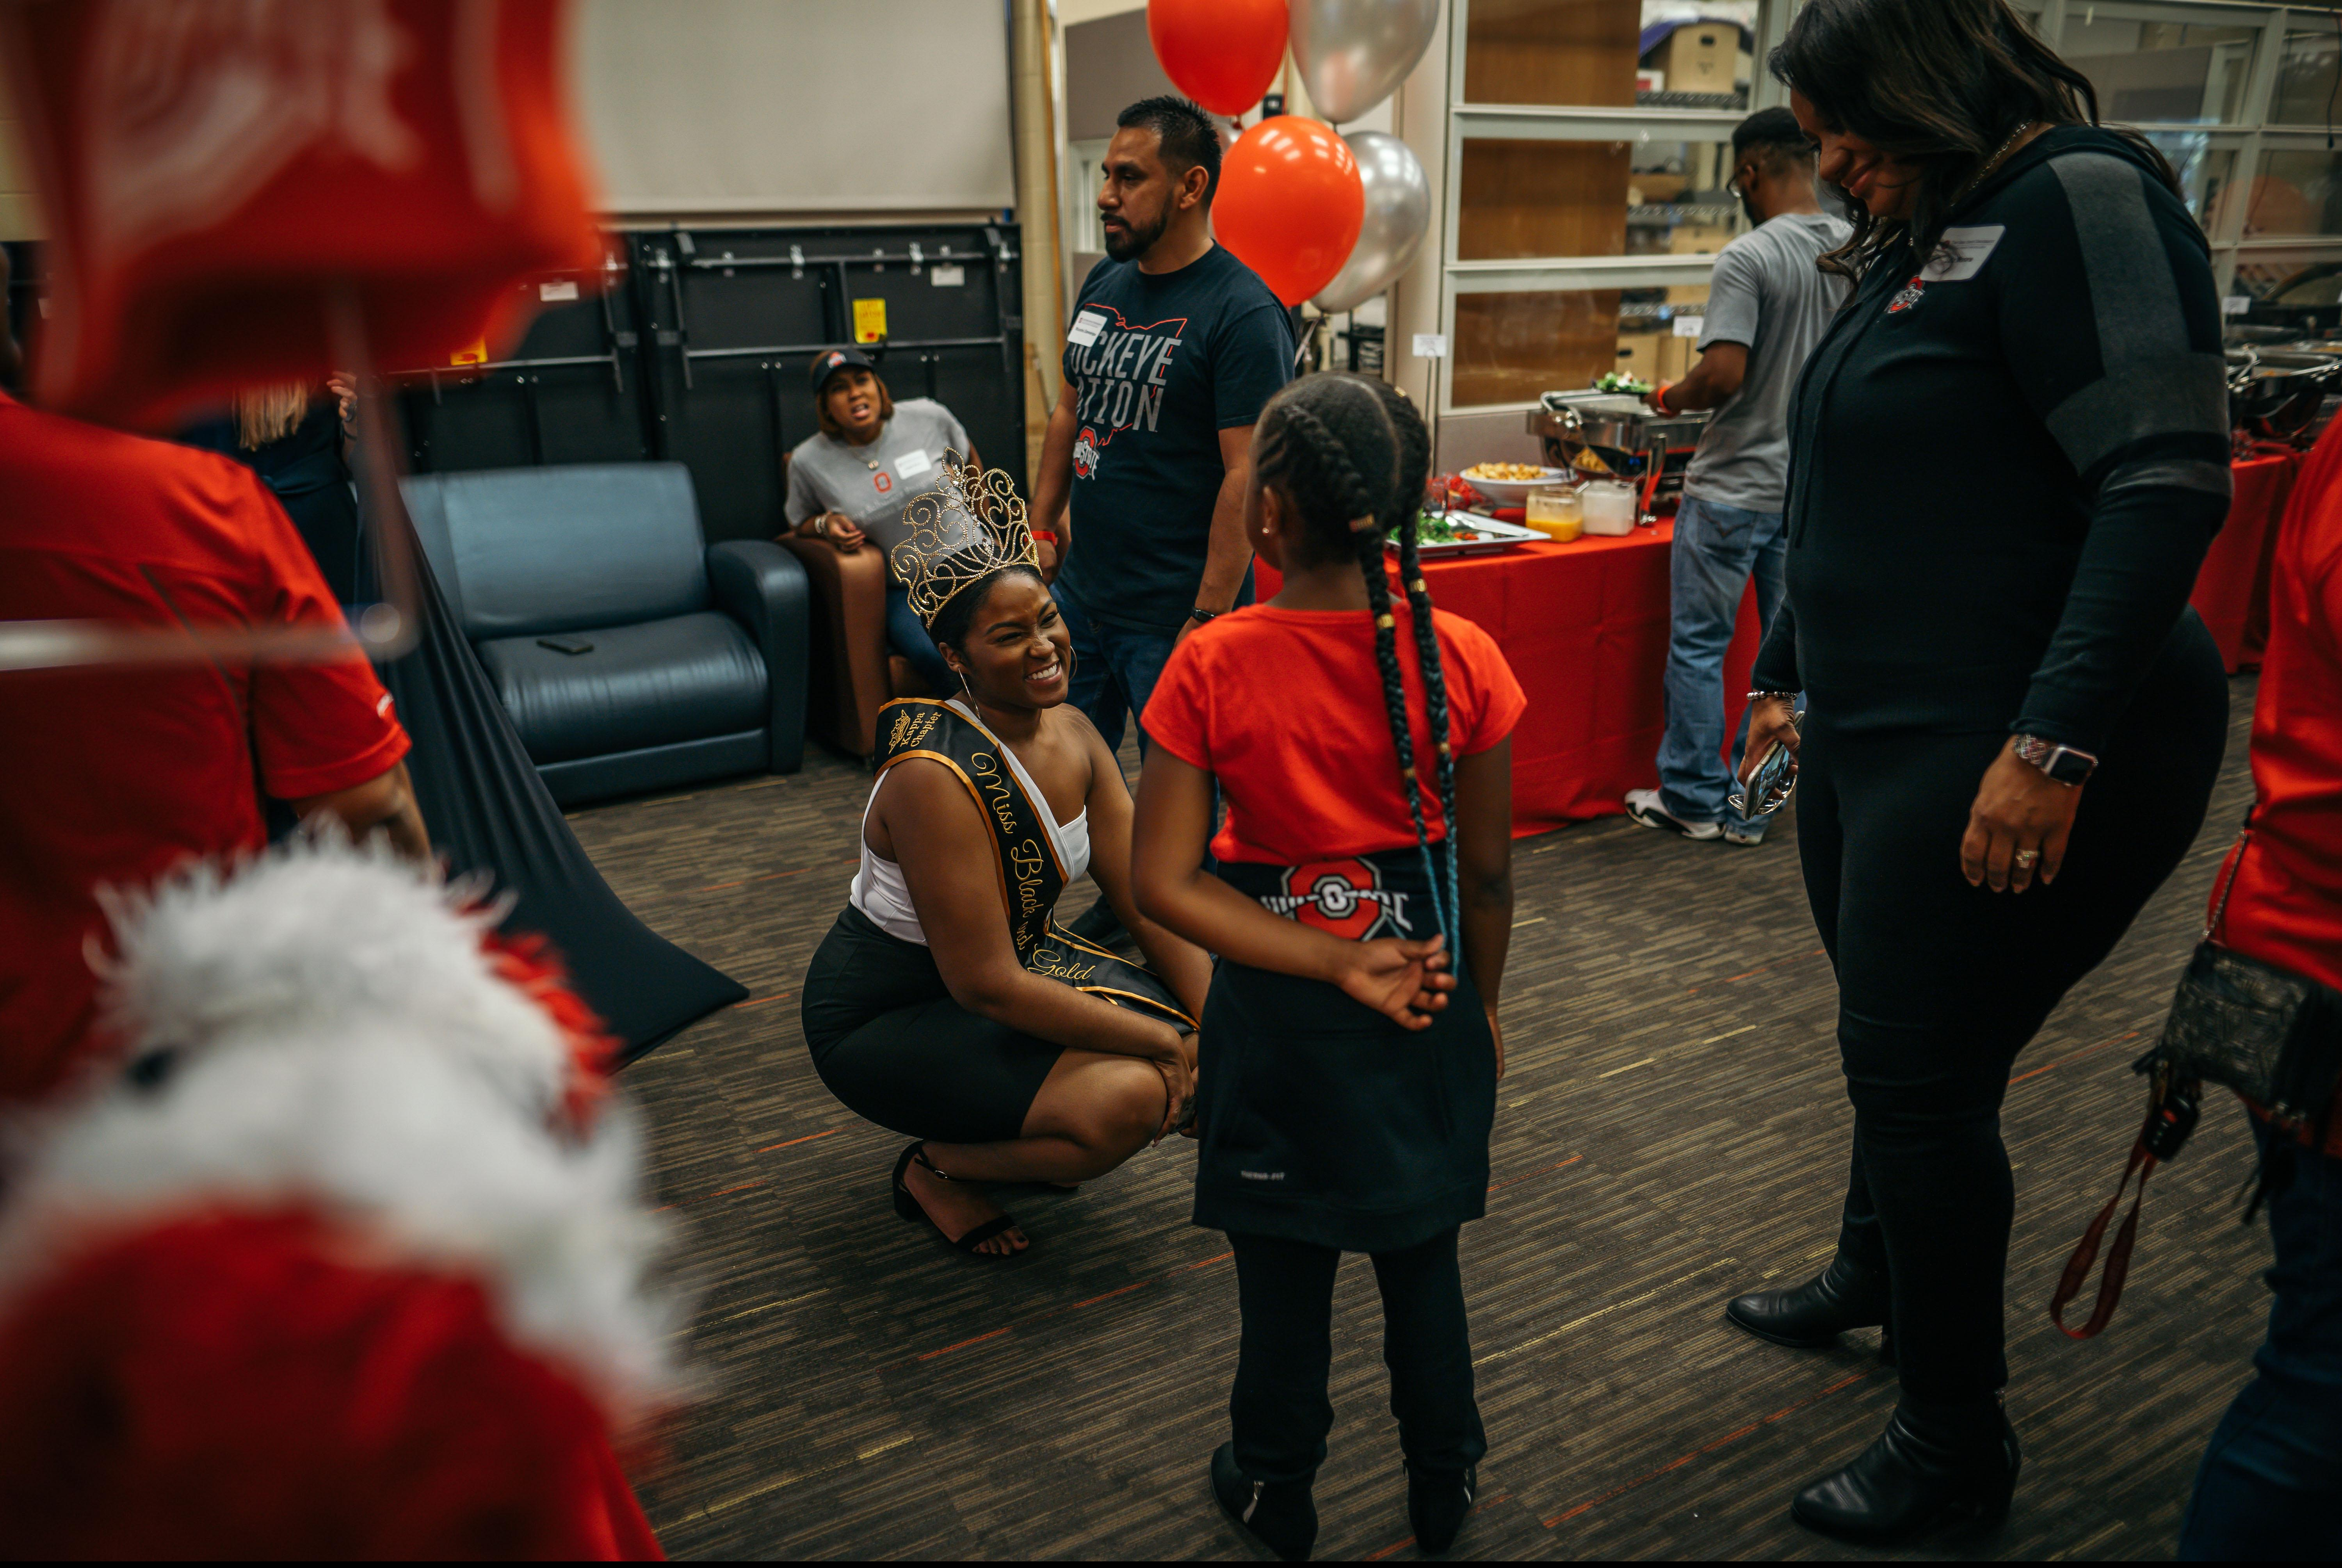 Black Homecoming queen speaks to young child